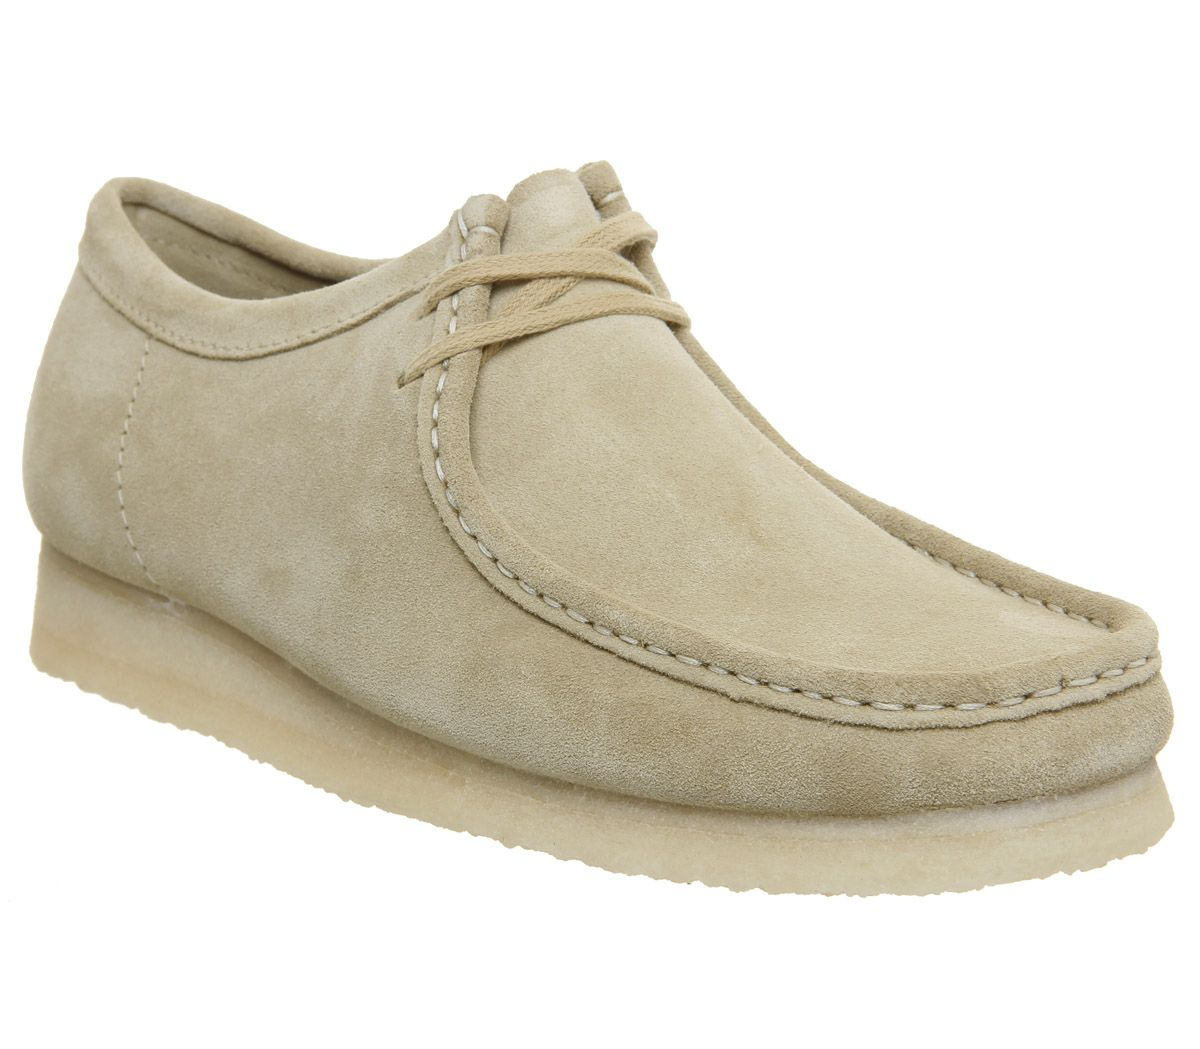 6a51620c Wallabee Shoes